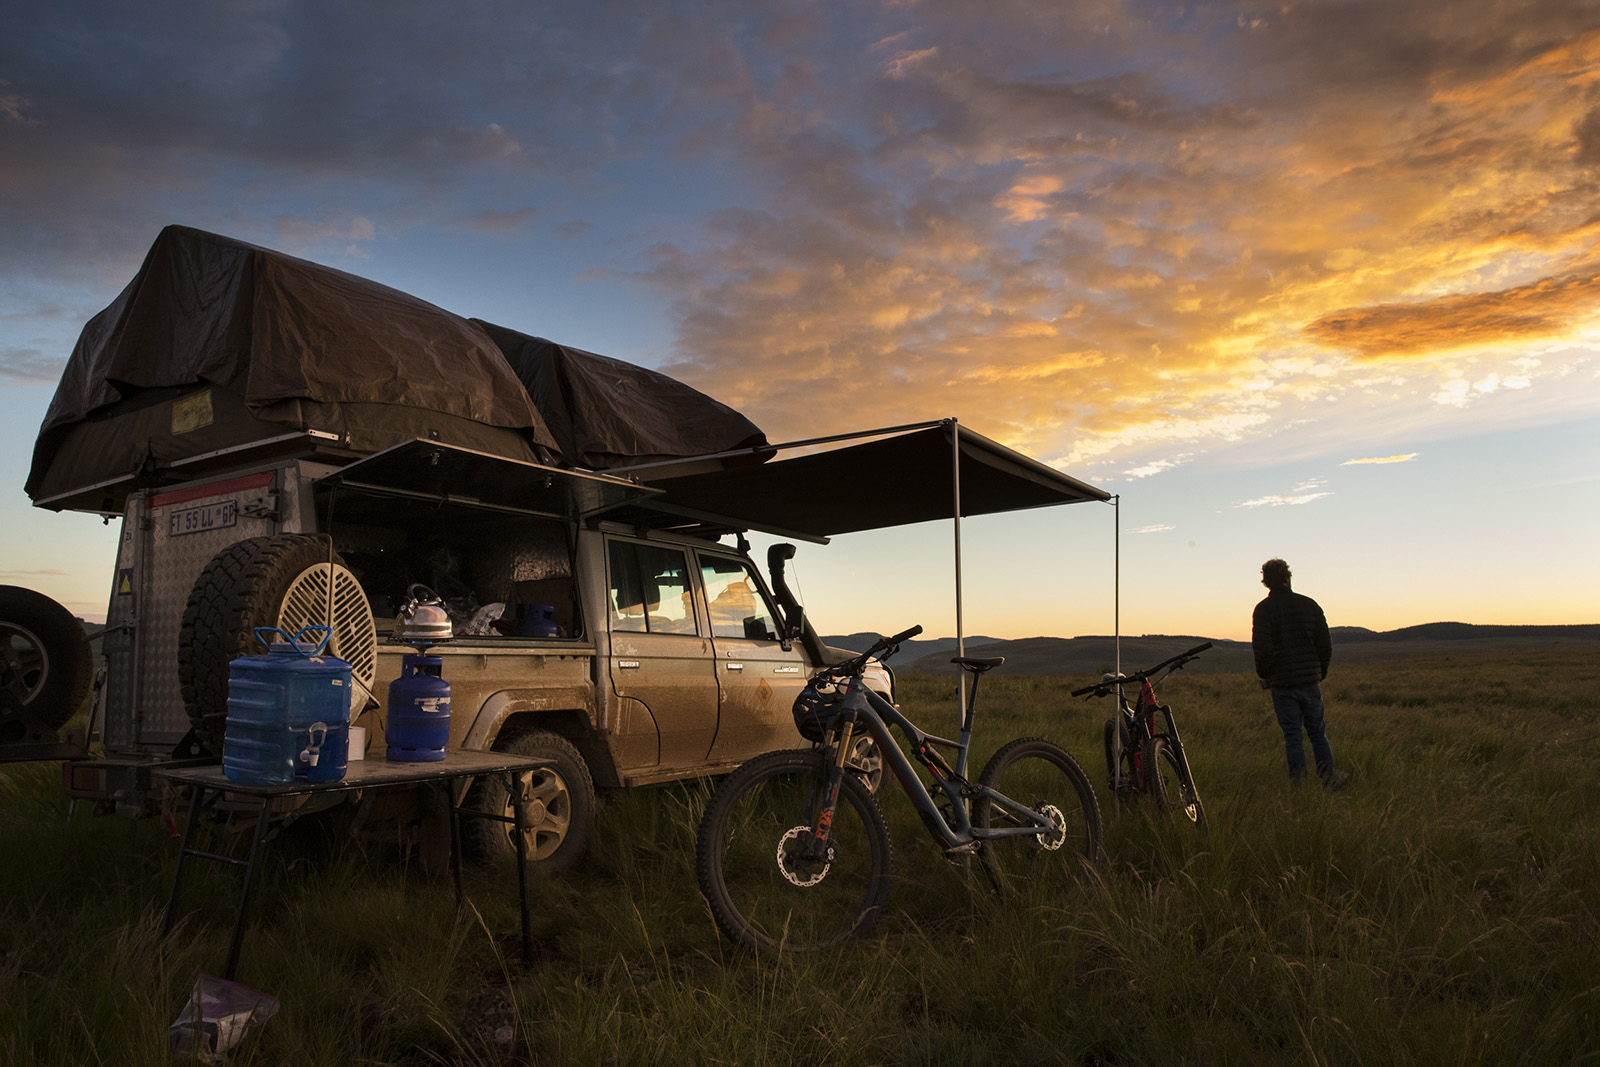 Matt Hunter with locals Hylton Turvey and Fanie Kok riding in the trails of Karkloof and Drakensberg in South Africa.